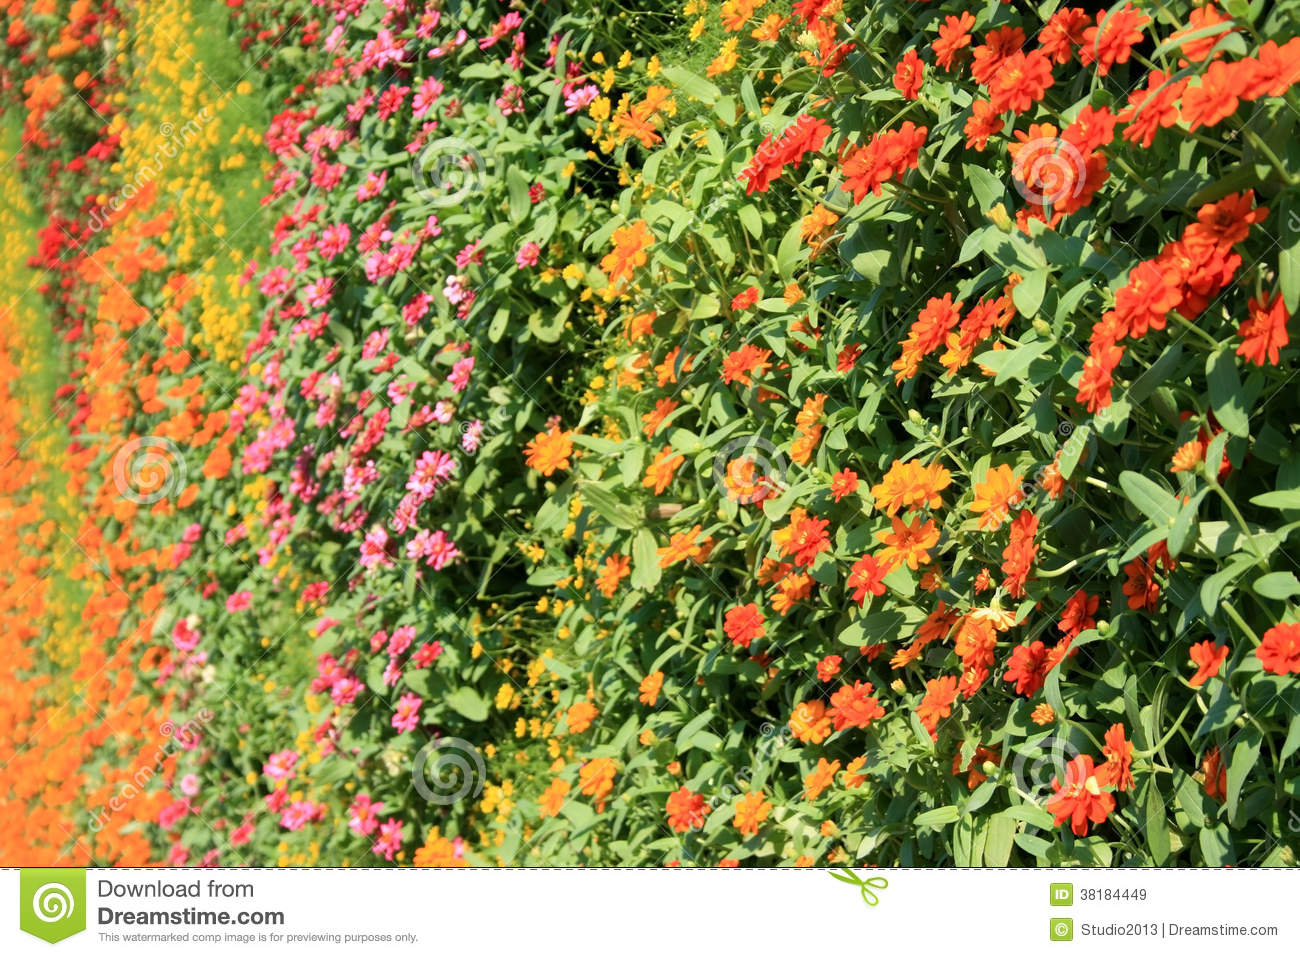 Download Flower Wall Vertical Garden Stock Image   Image Of Vertical,  Plant: 38184449